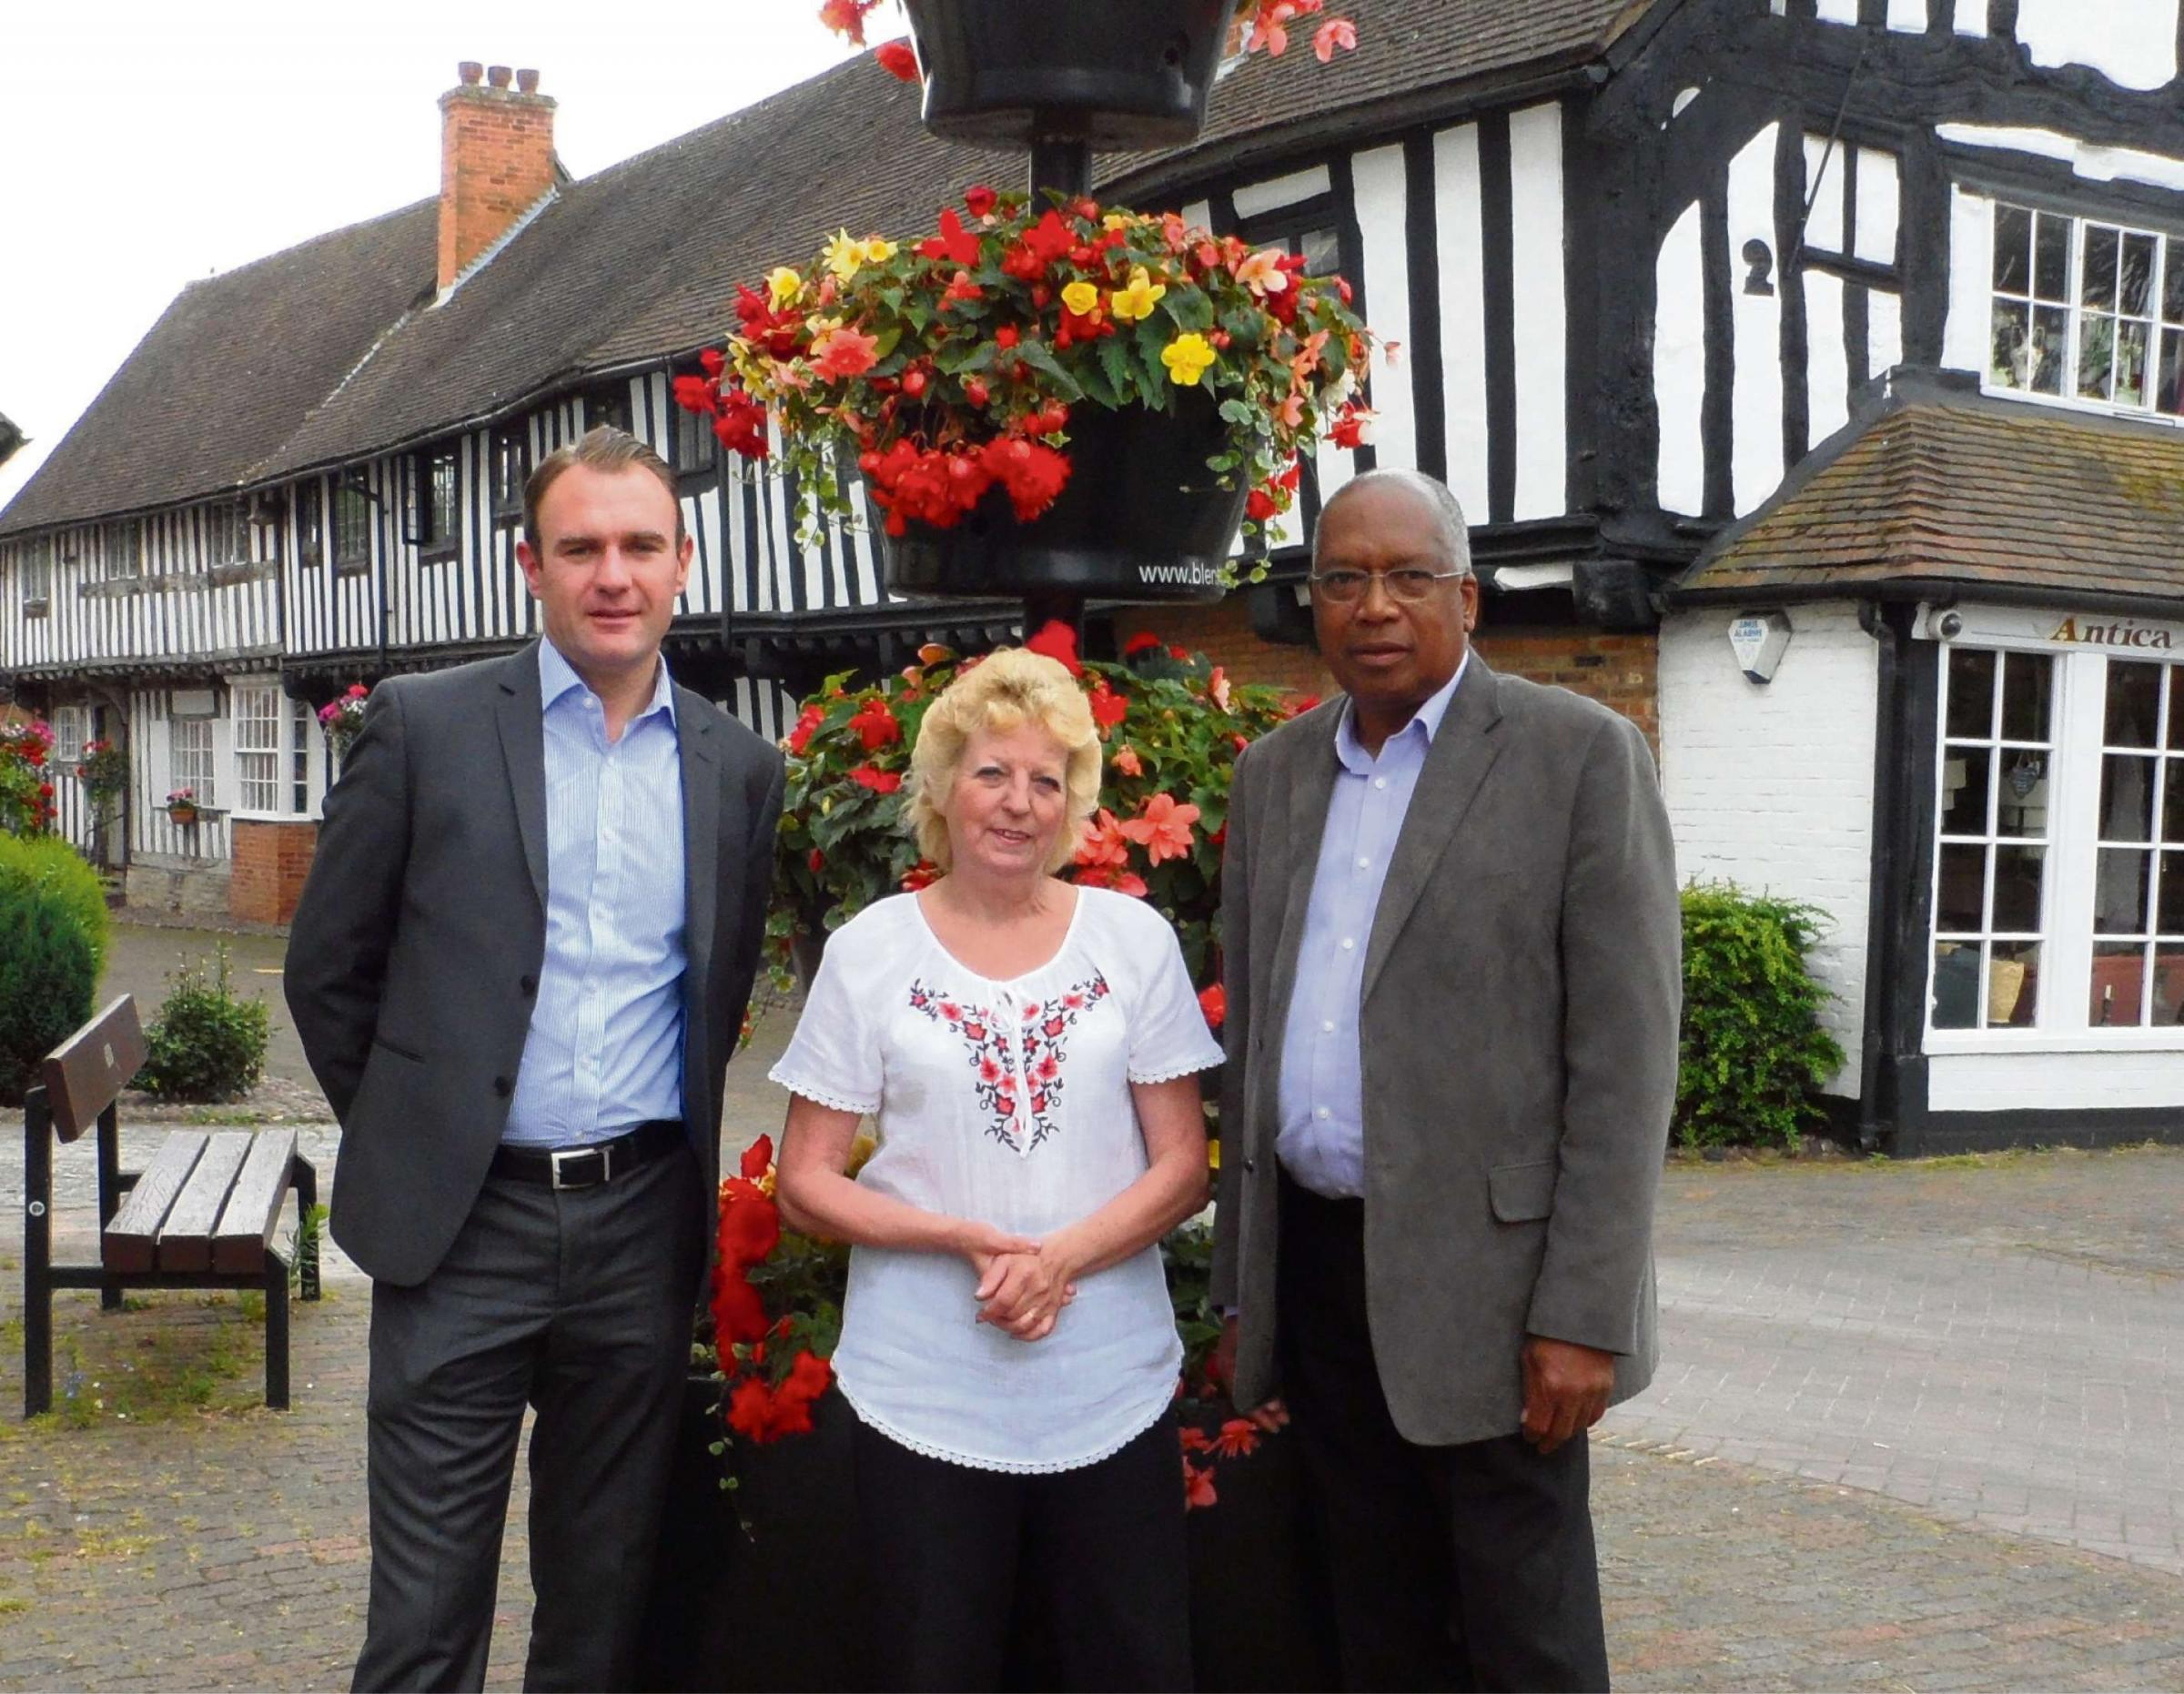 Iwan Jones, managing director of Renaissance Villages, with Maggie Payne from Alcester in Bloom, and C